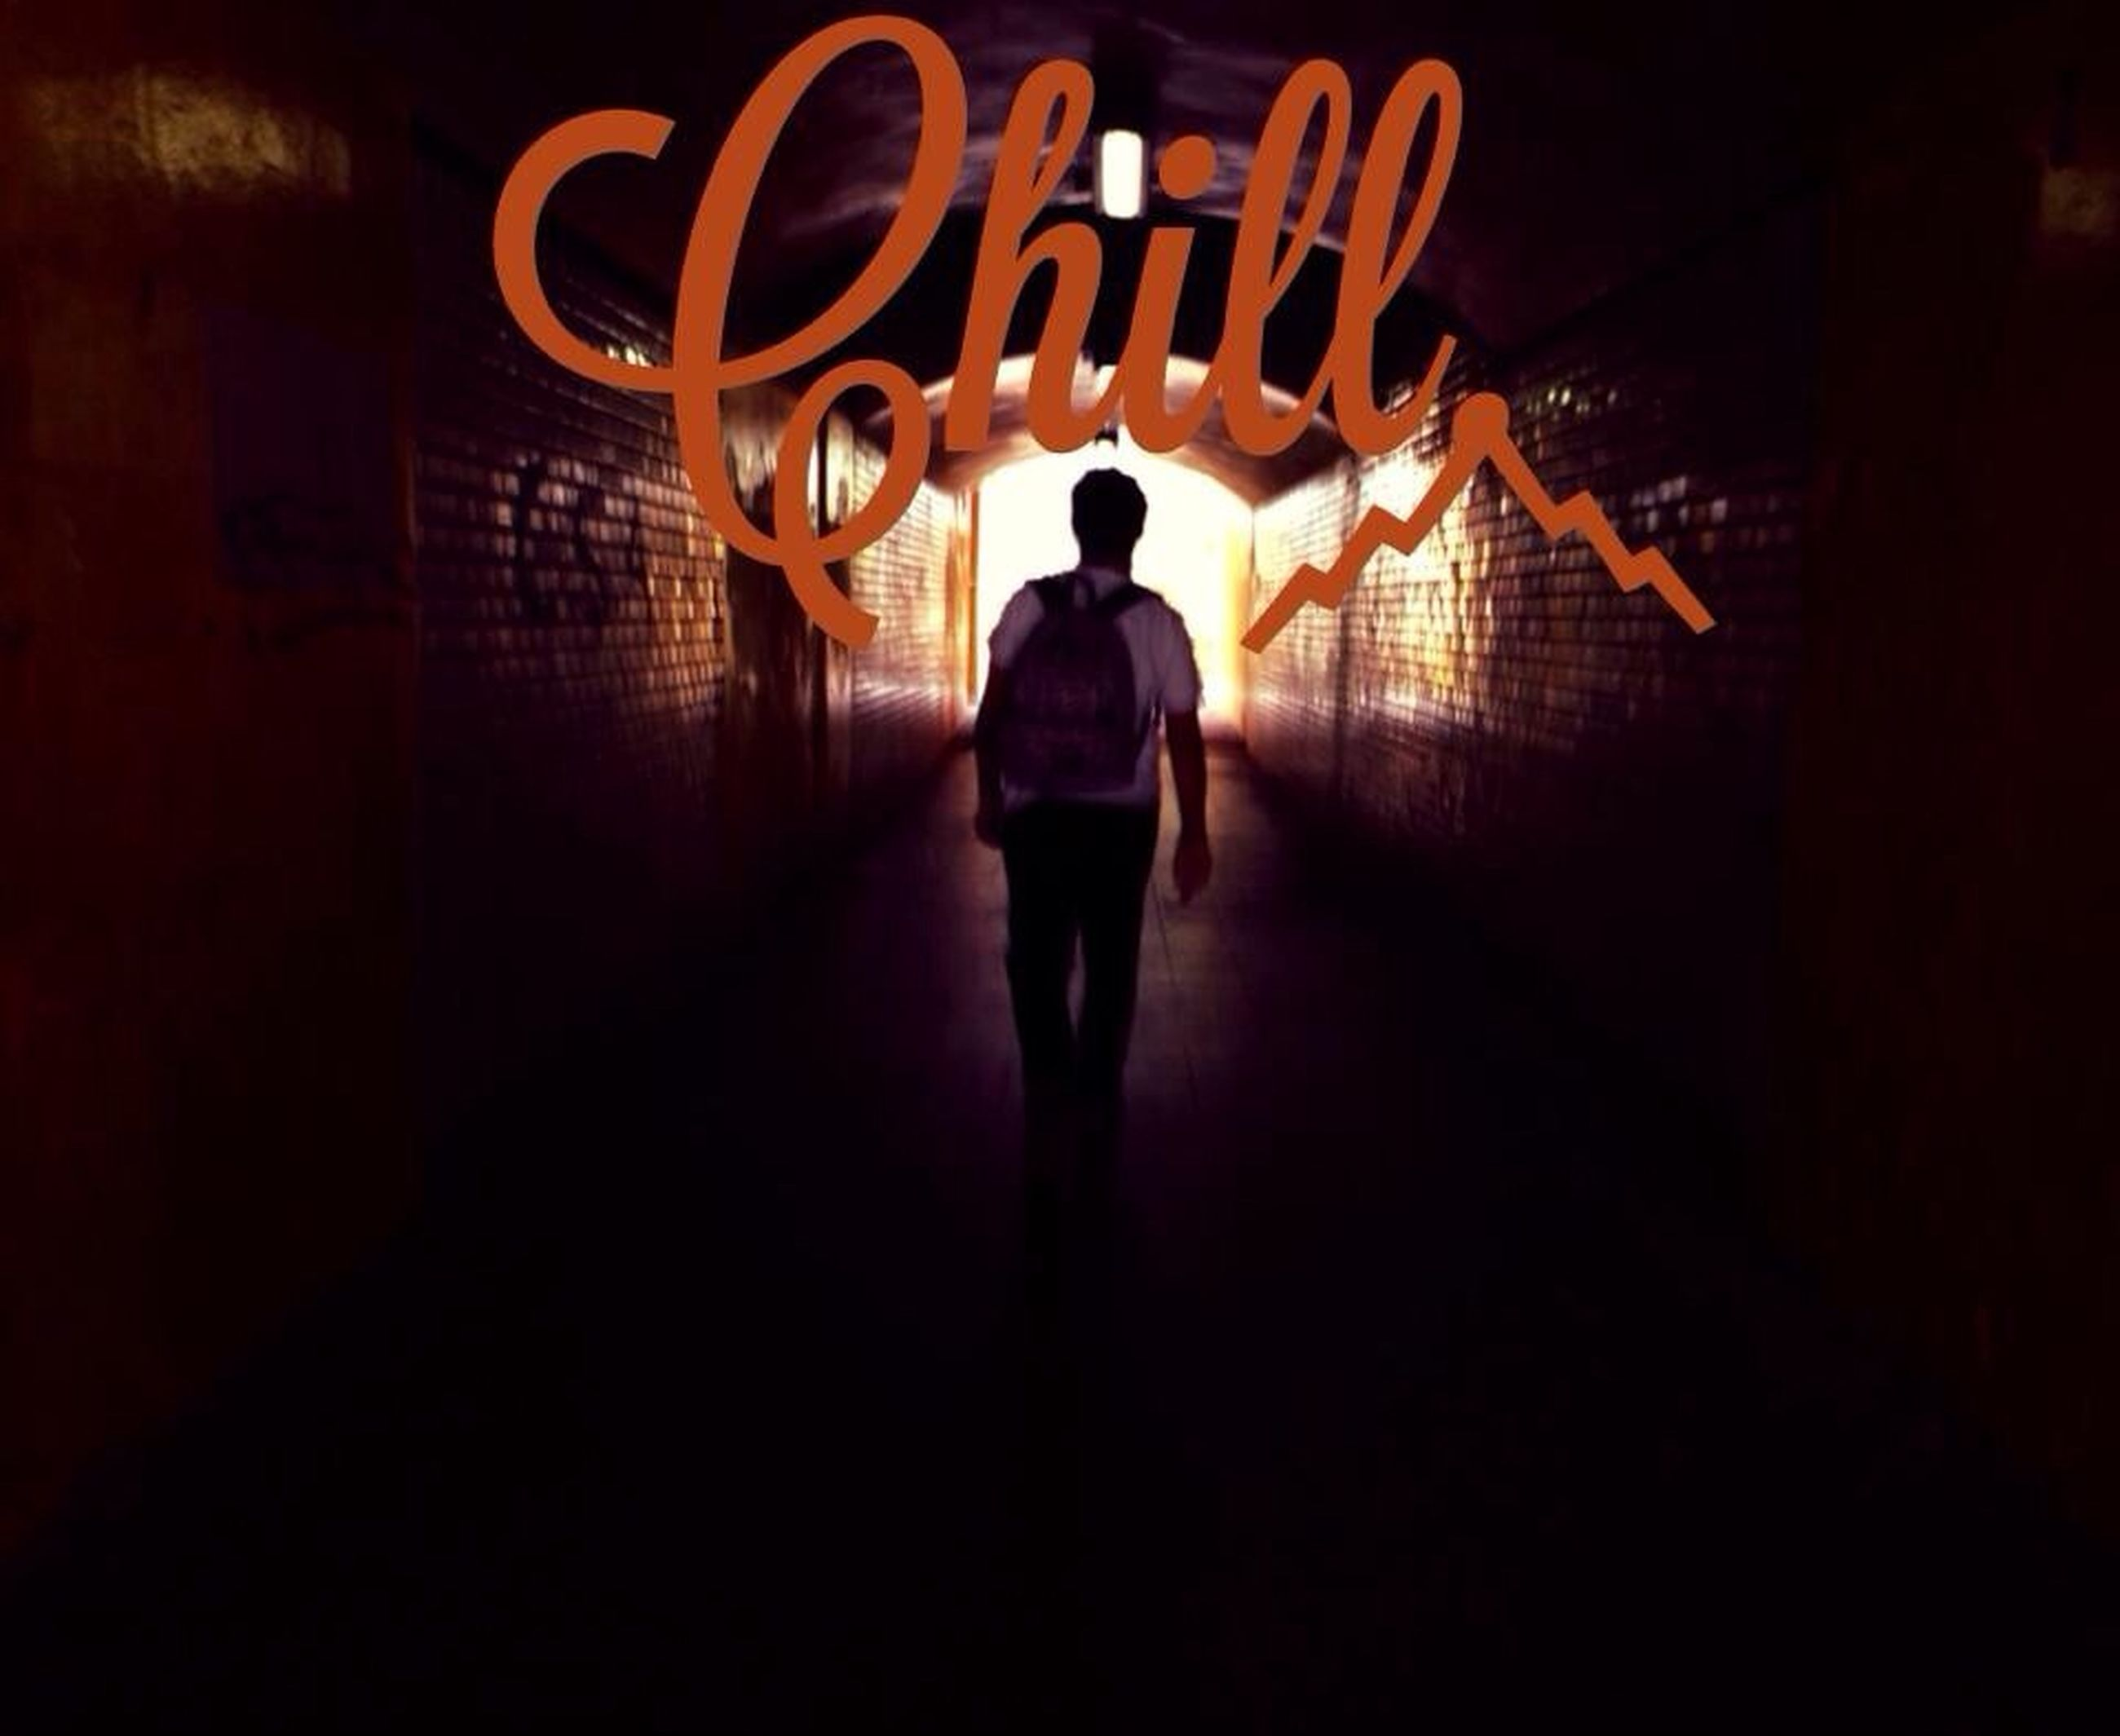 illuminated, lifestyles, indoors, men, full length, rear view, walking, night, standing, built structure, wall - building feature, silhouette, architecture, tunnel, leisure activity, dark, text, unrecognizable person